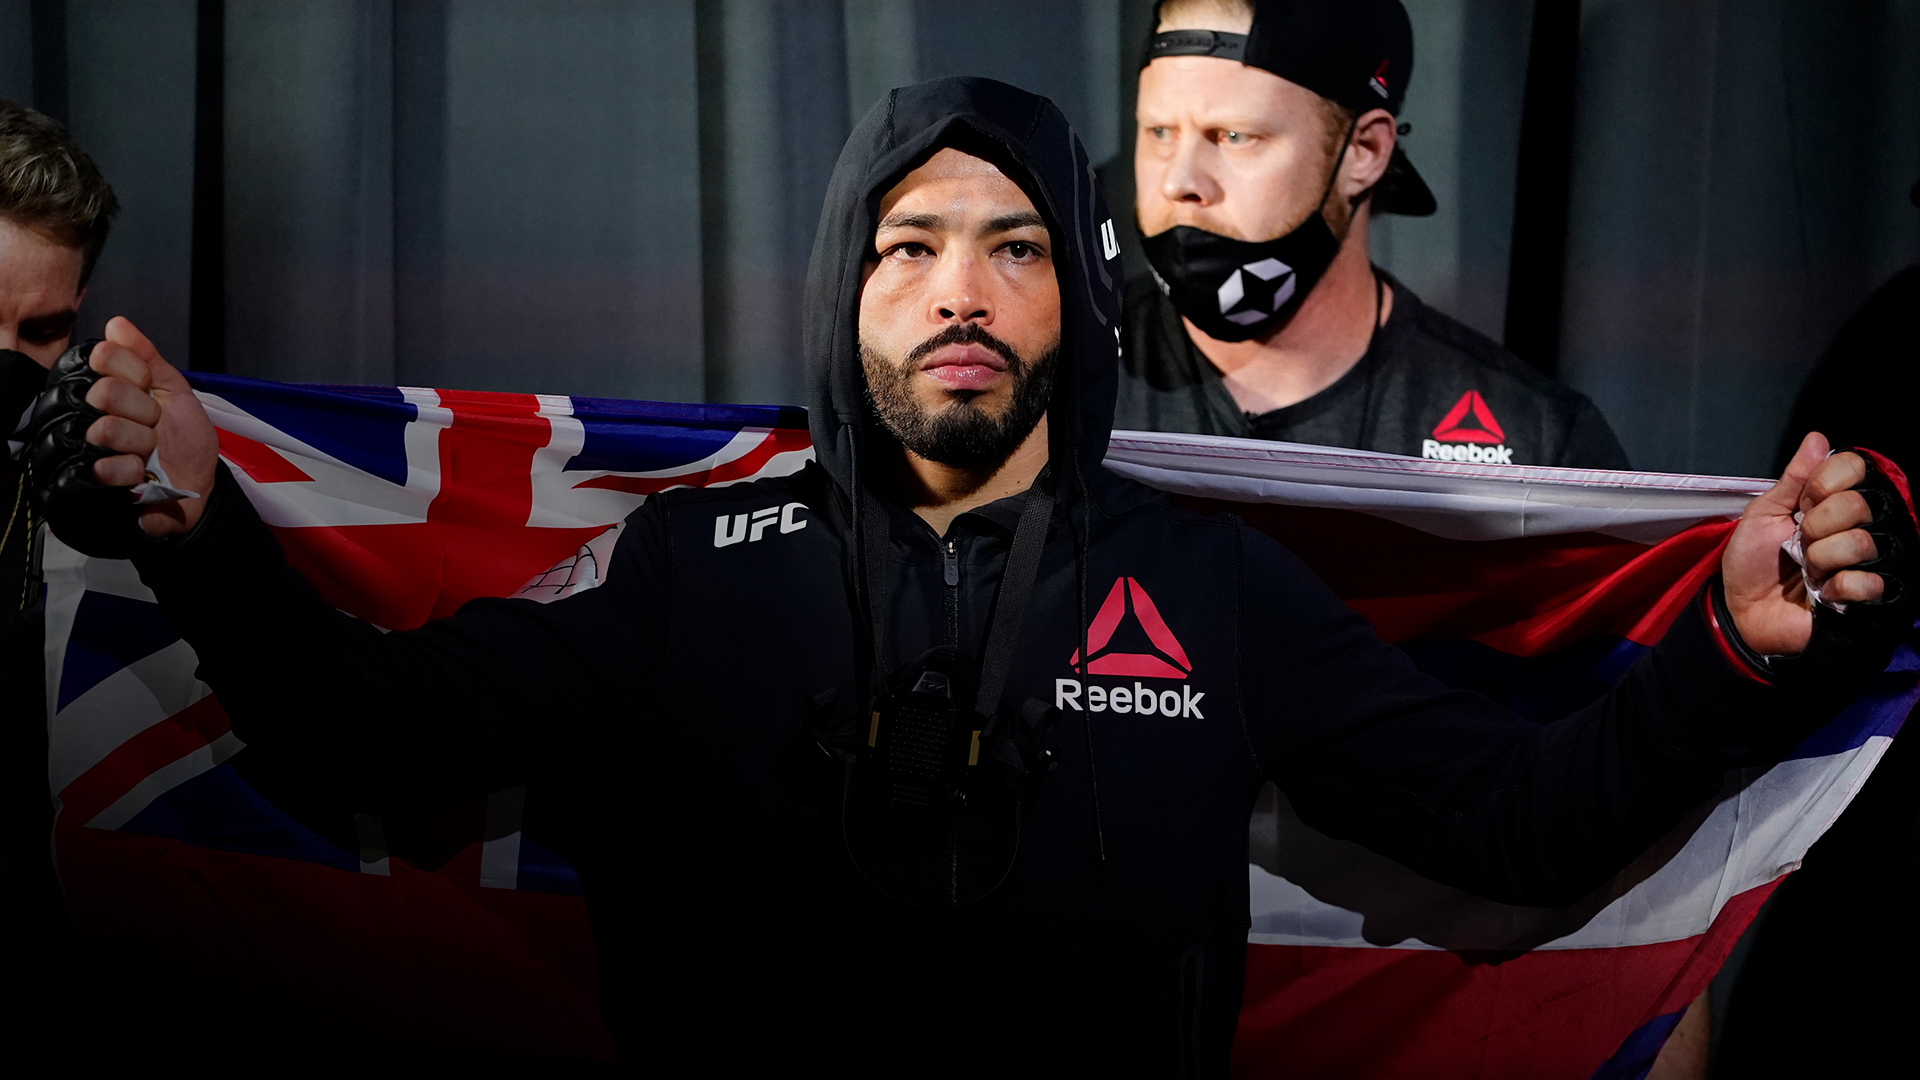 Dan Ige prepares to fight Gavin Tucker in a featherweight fight during the UFC Fight Night event at UFC APEX on March 13, 2021 in Las Vegas, Nevada. (Photo by Jeff Bottari/Zuffa LLC via Getty Images)